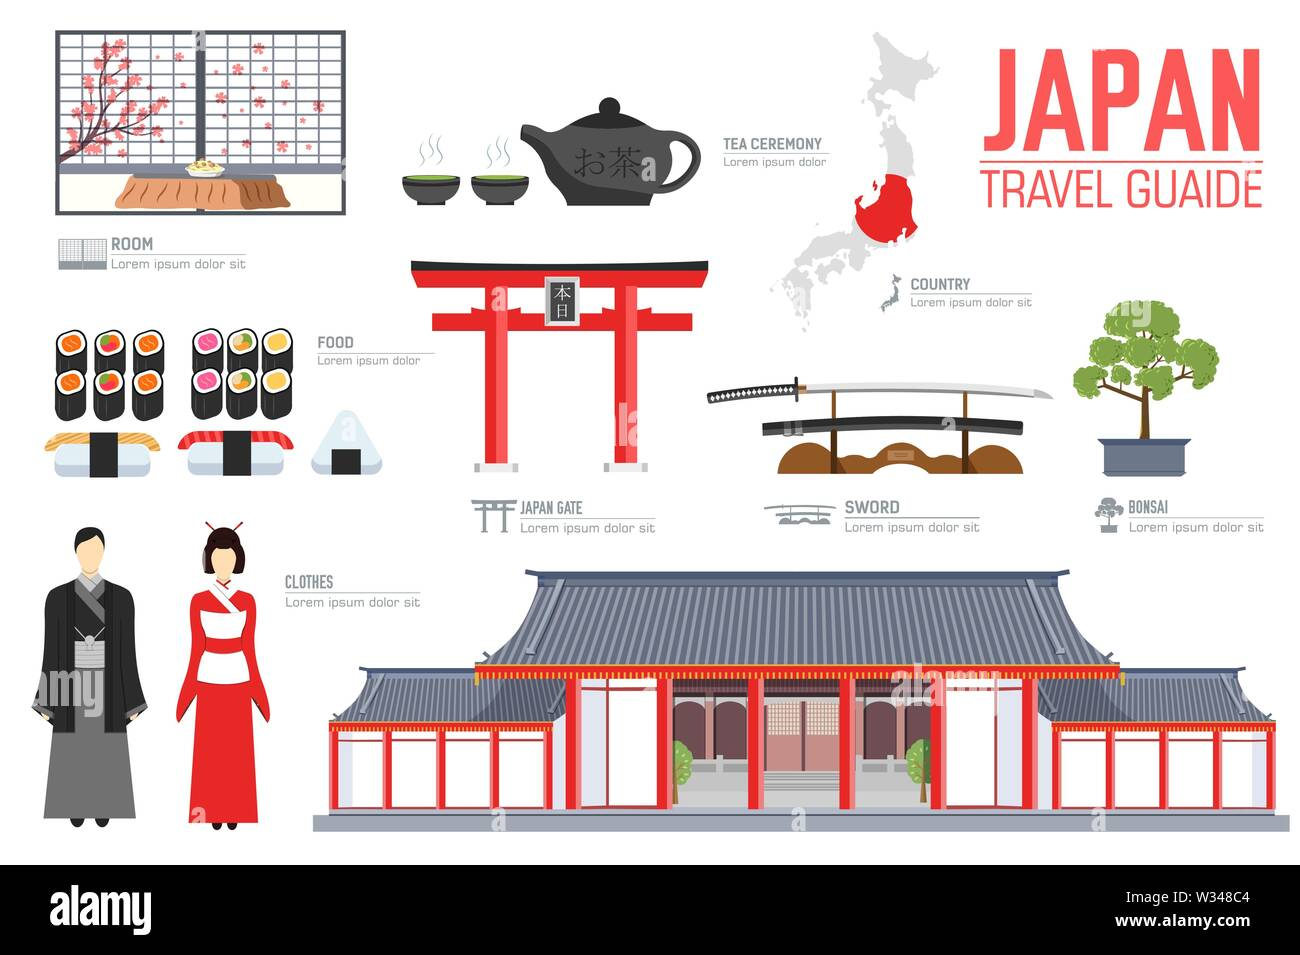 Japan travel guide template. Set of japanese landmarks, cuisine, traditions flat icons, pictograms on white. Sightseeing attractions and cultural symb - Stock Image